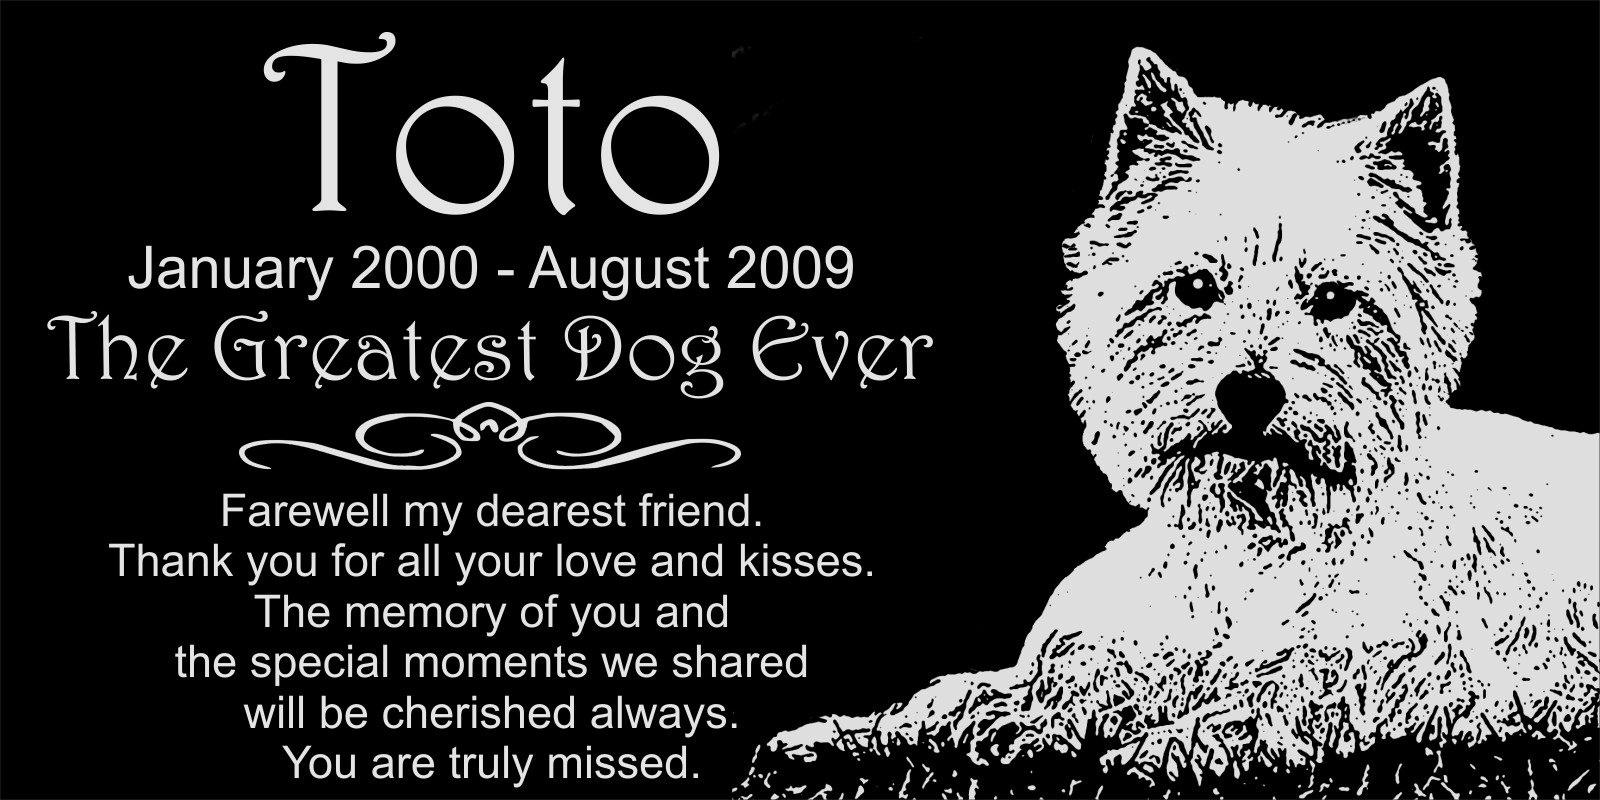 Personalized West Highland White Terrier Westie Dog Pet Memorial 12''x6'' Engraved Black Granite Grave Marker Head Stone Plaque TOT1